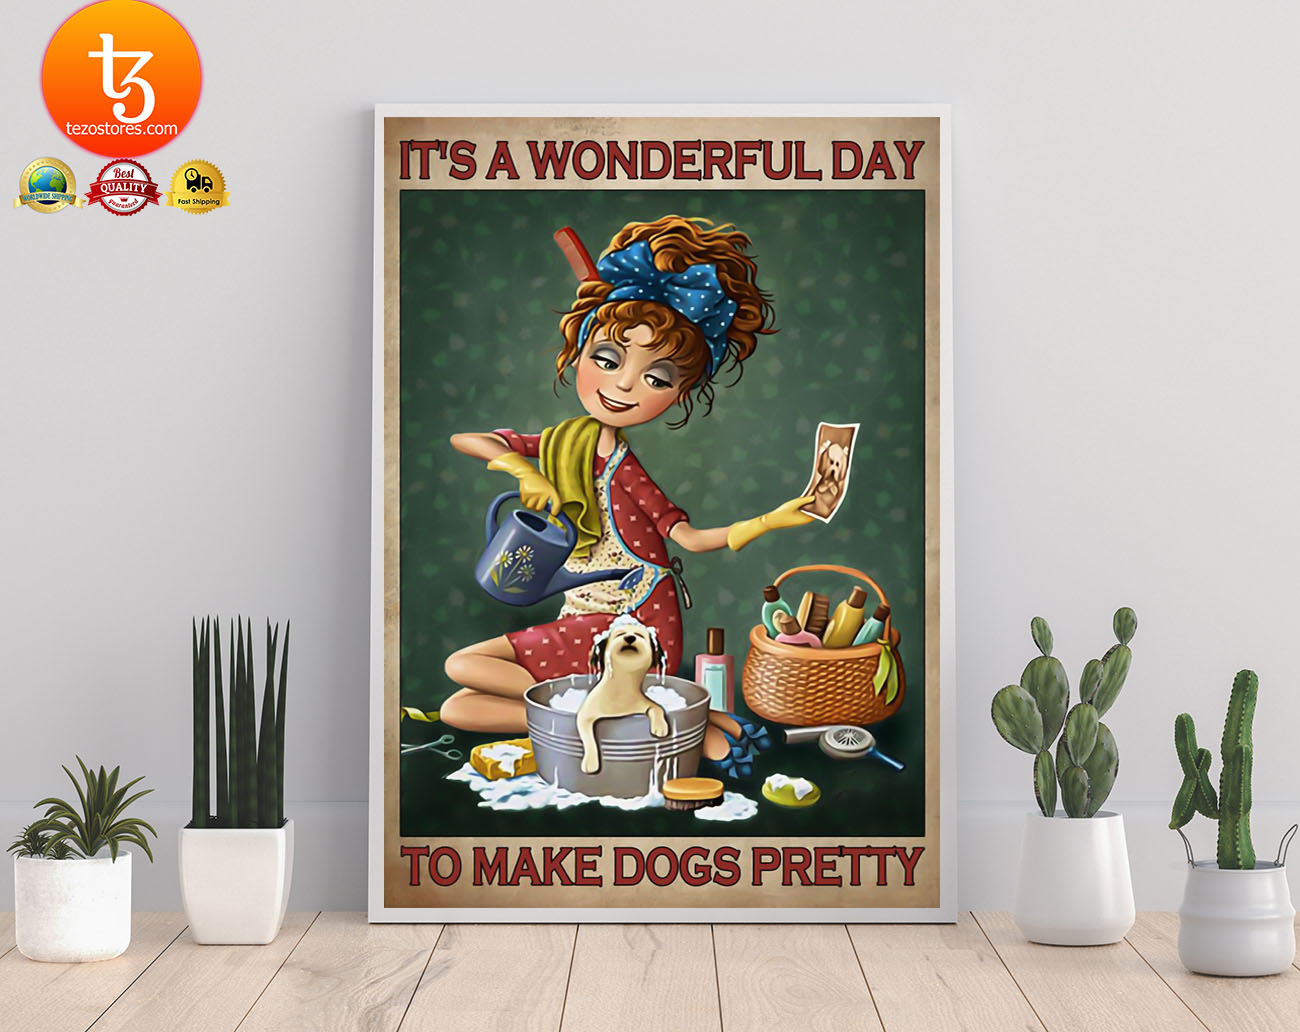 It's a wonderul day to make dogs pretty poster 19